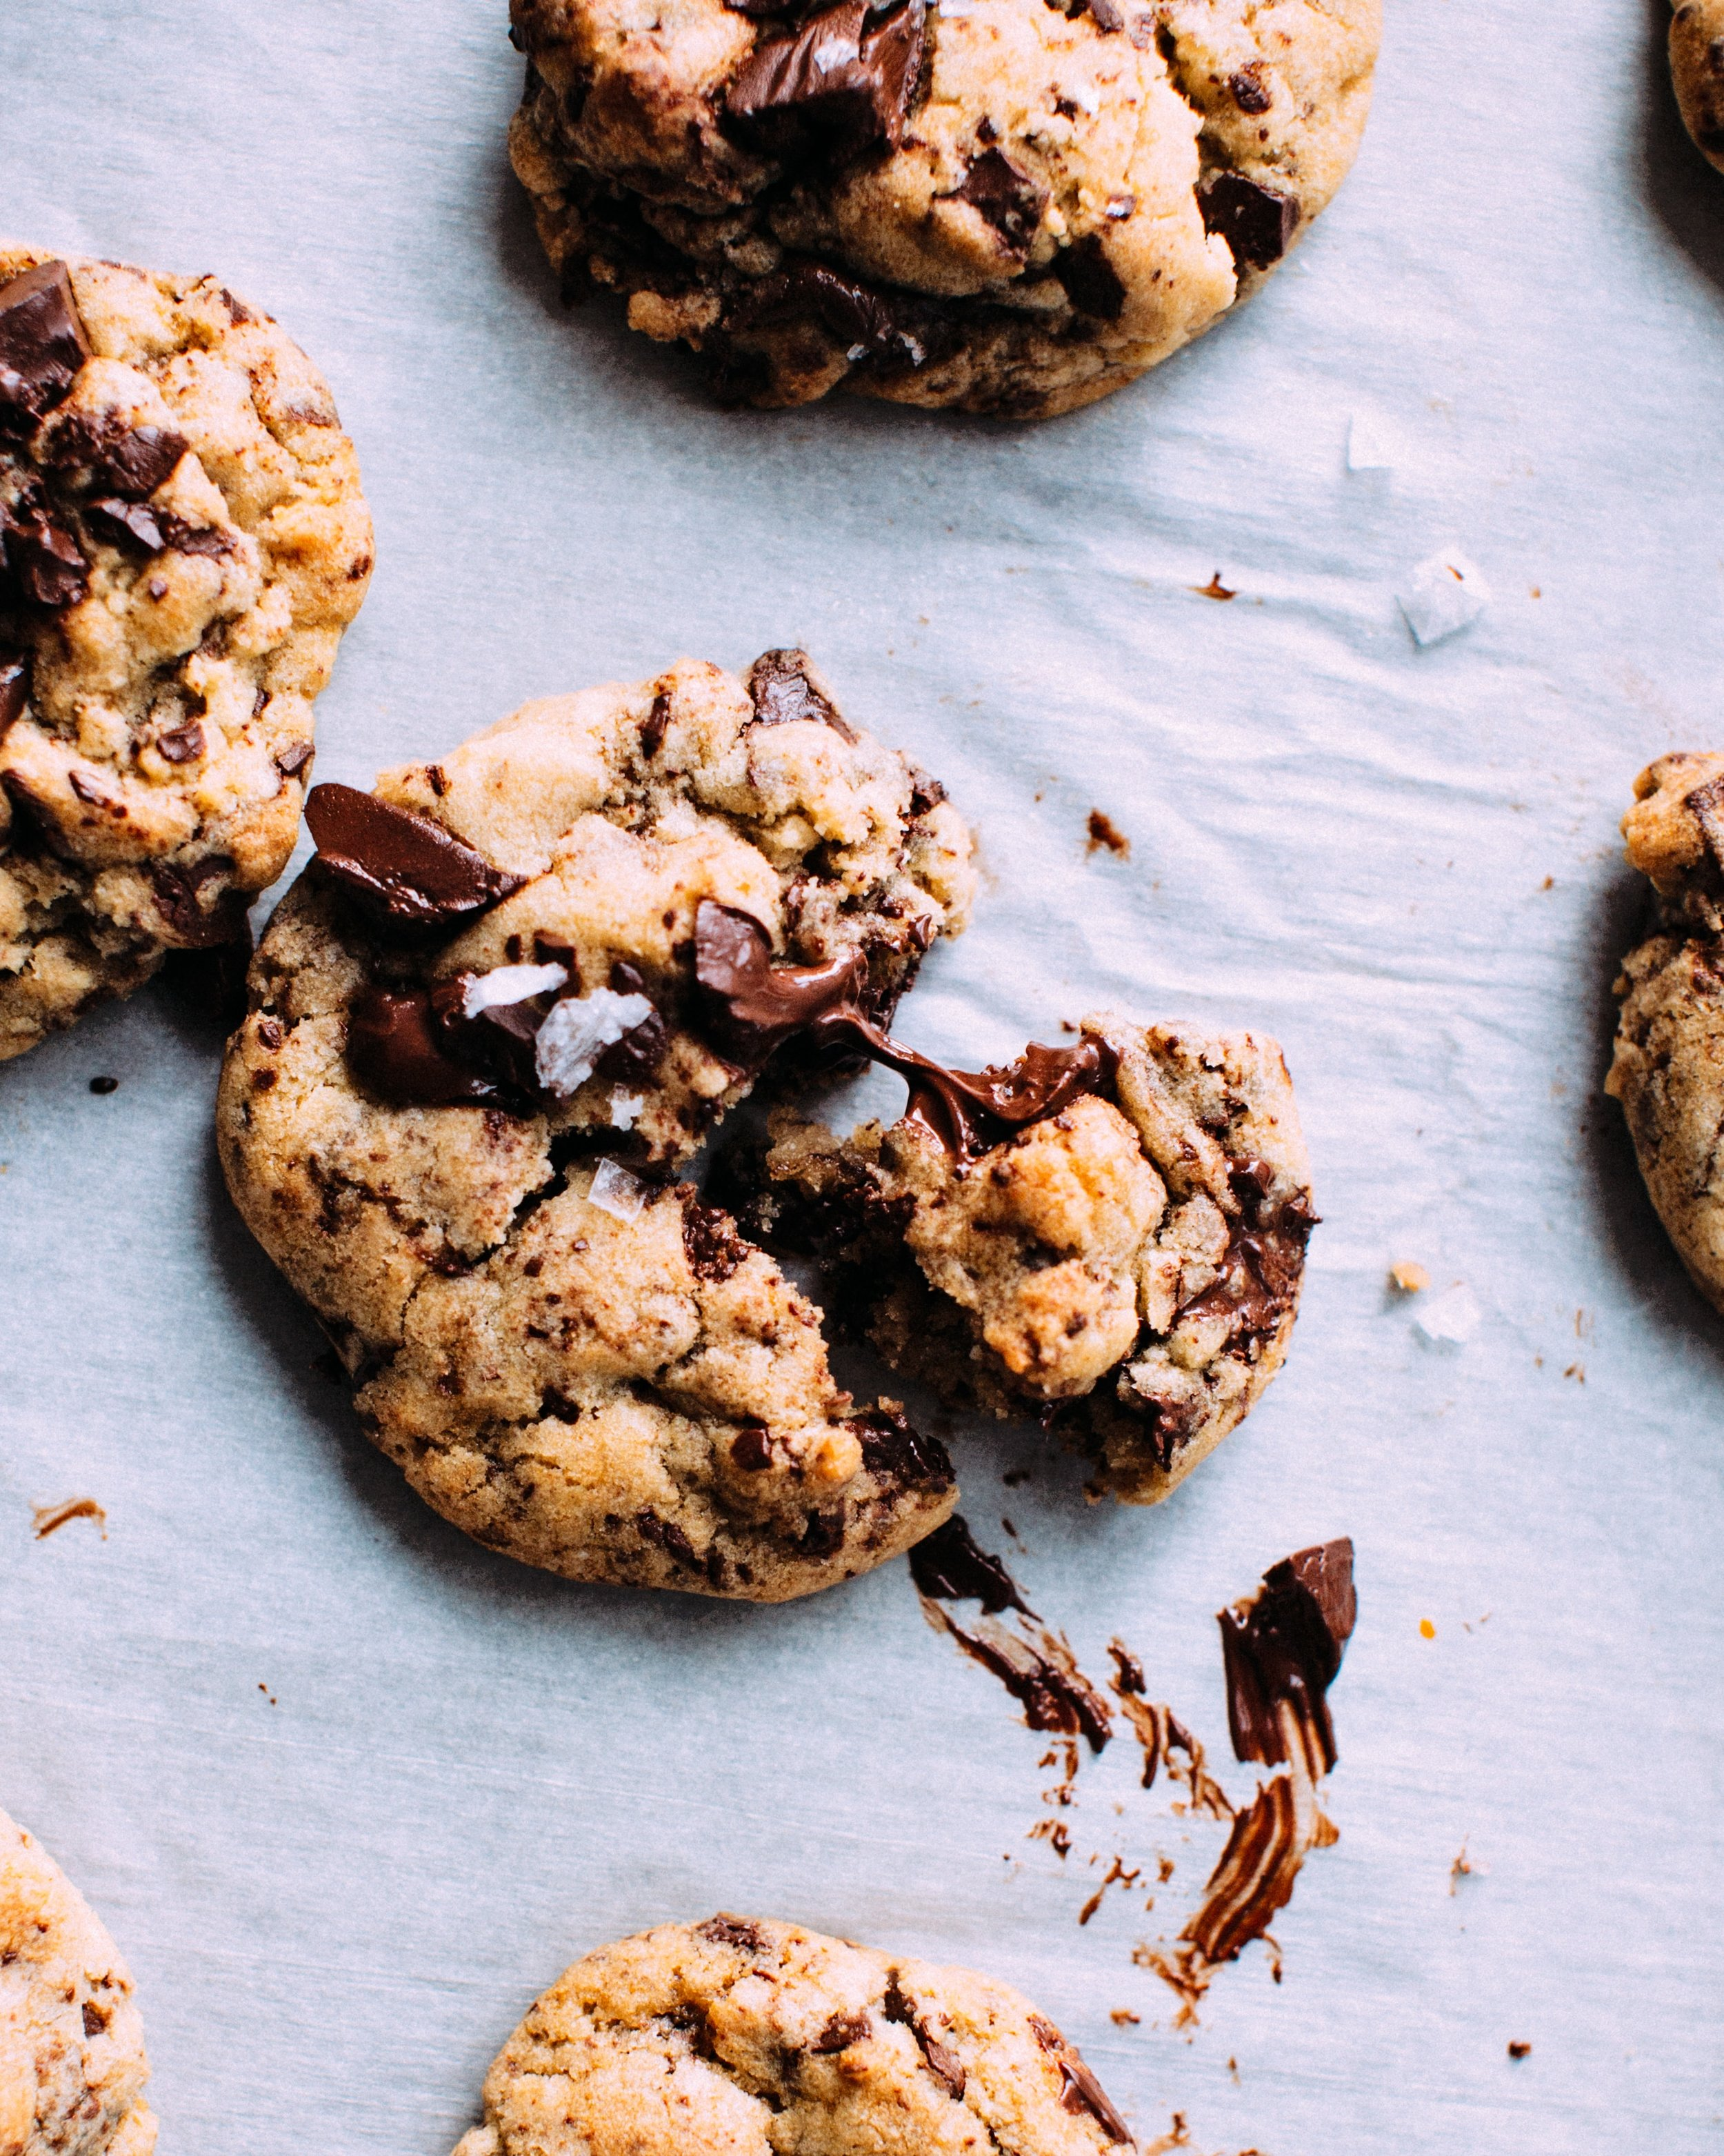 looking for a life where cookies aren't off the menu? - Find out how to feel ok around all foods & learn to nourish your body without restriction.